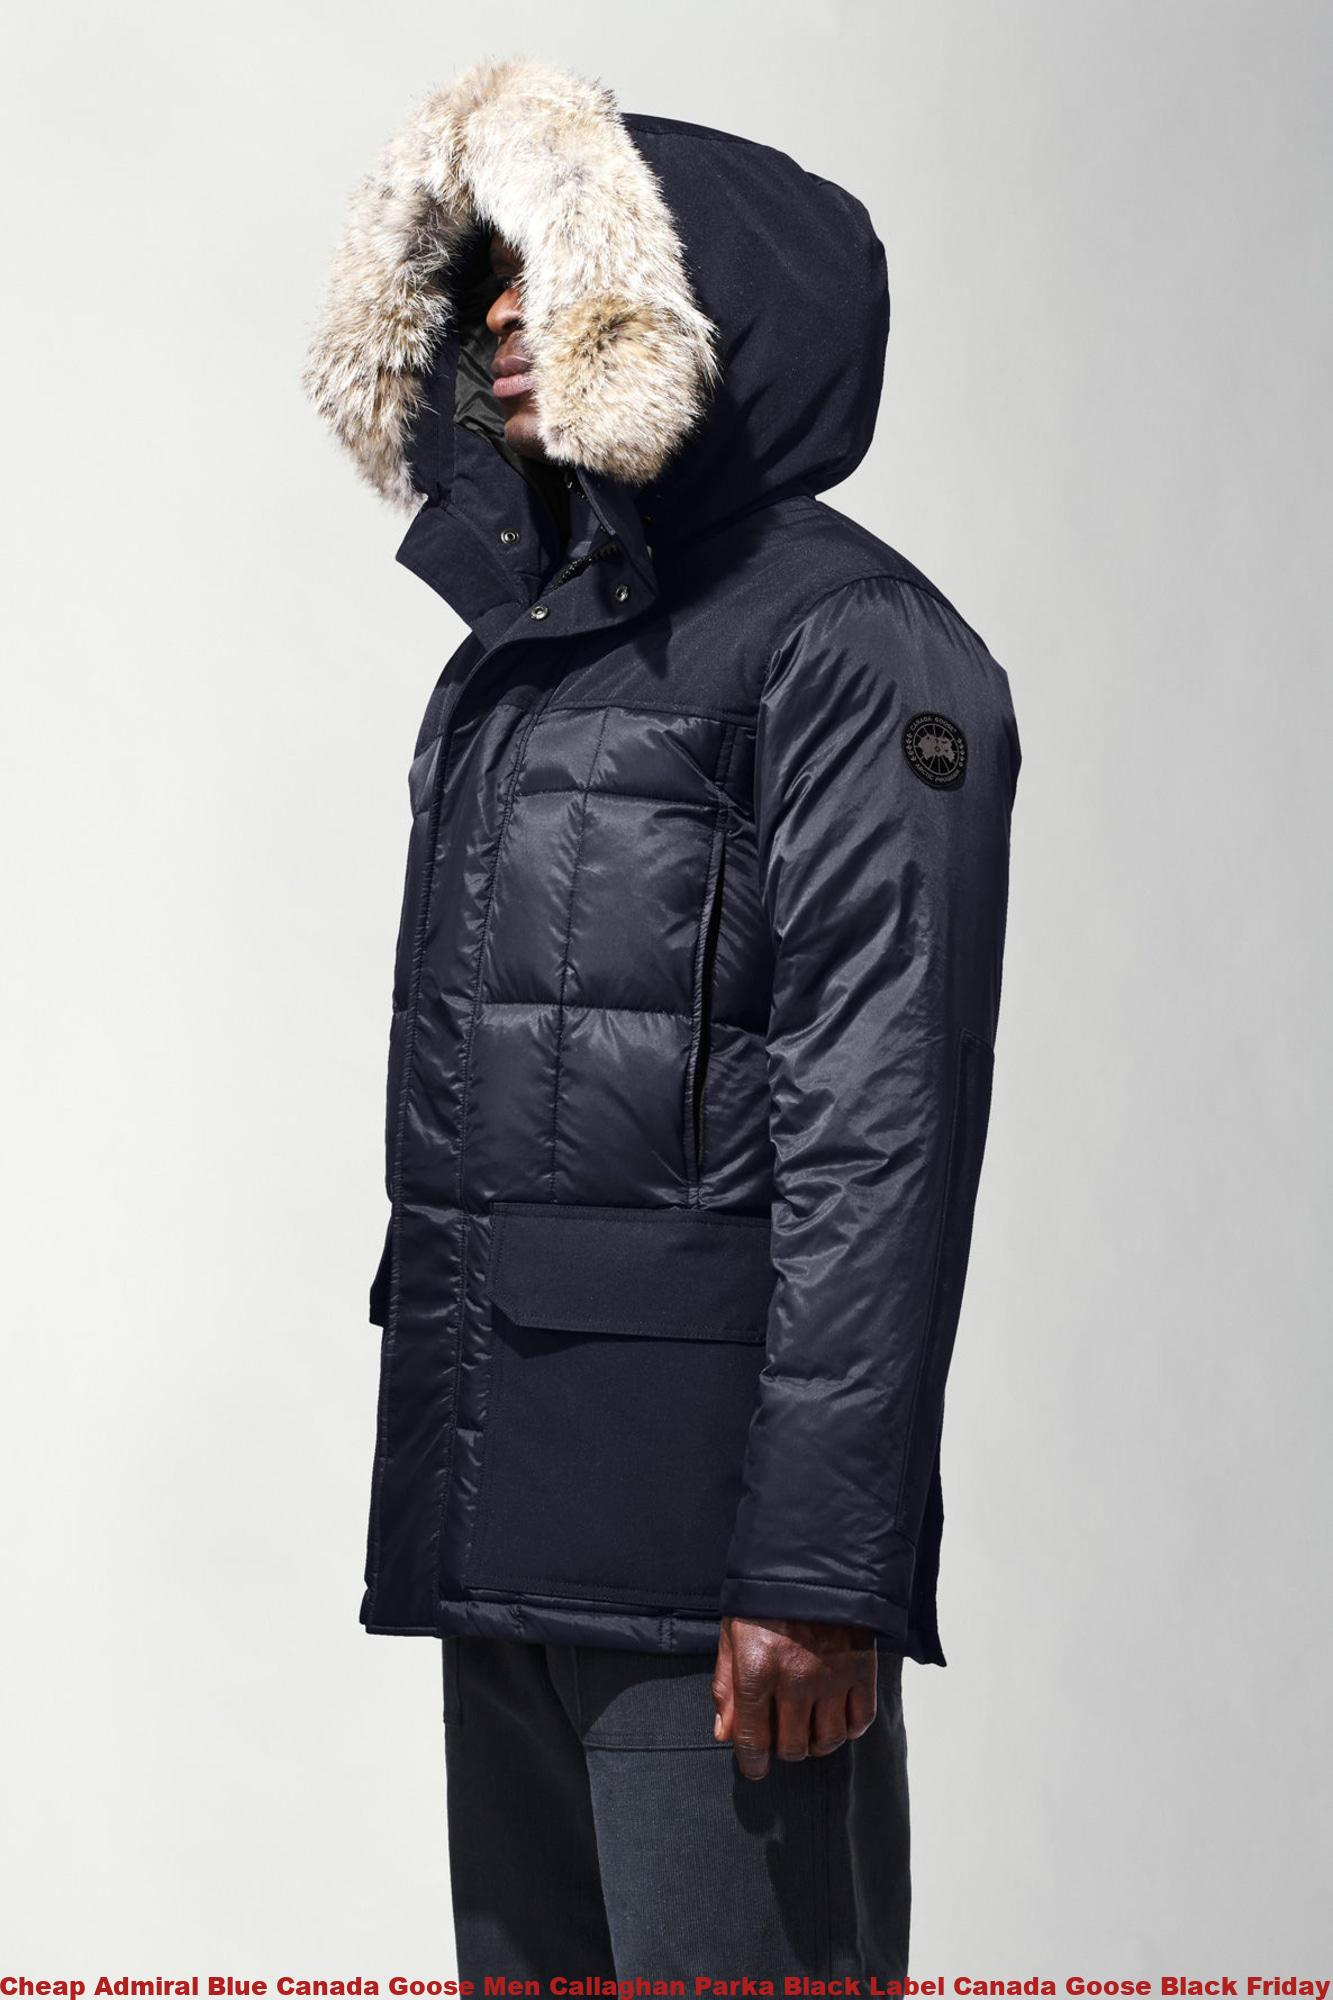 e51d8bb11 Cheap Admiral Blue Canada Goose Men Callaghan Parka Black Label Canada  Goose Black Friday Vancouver 3200MB